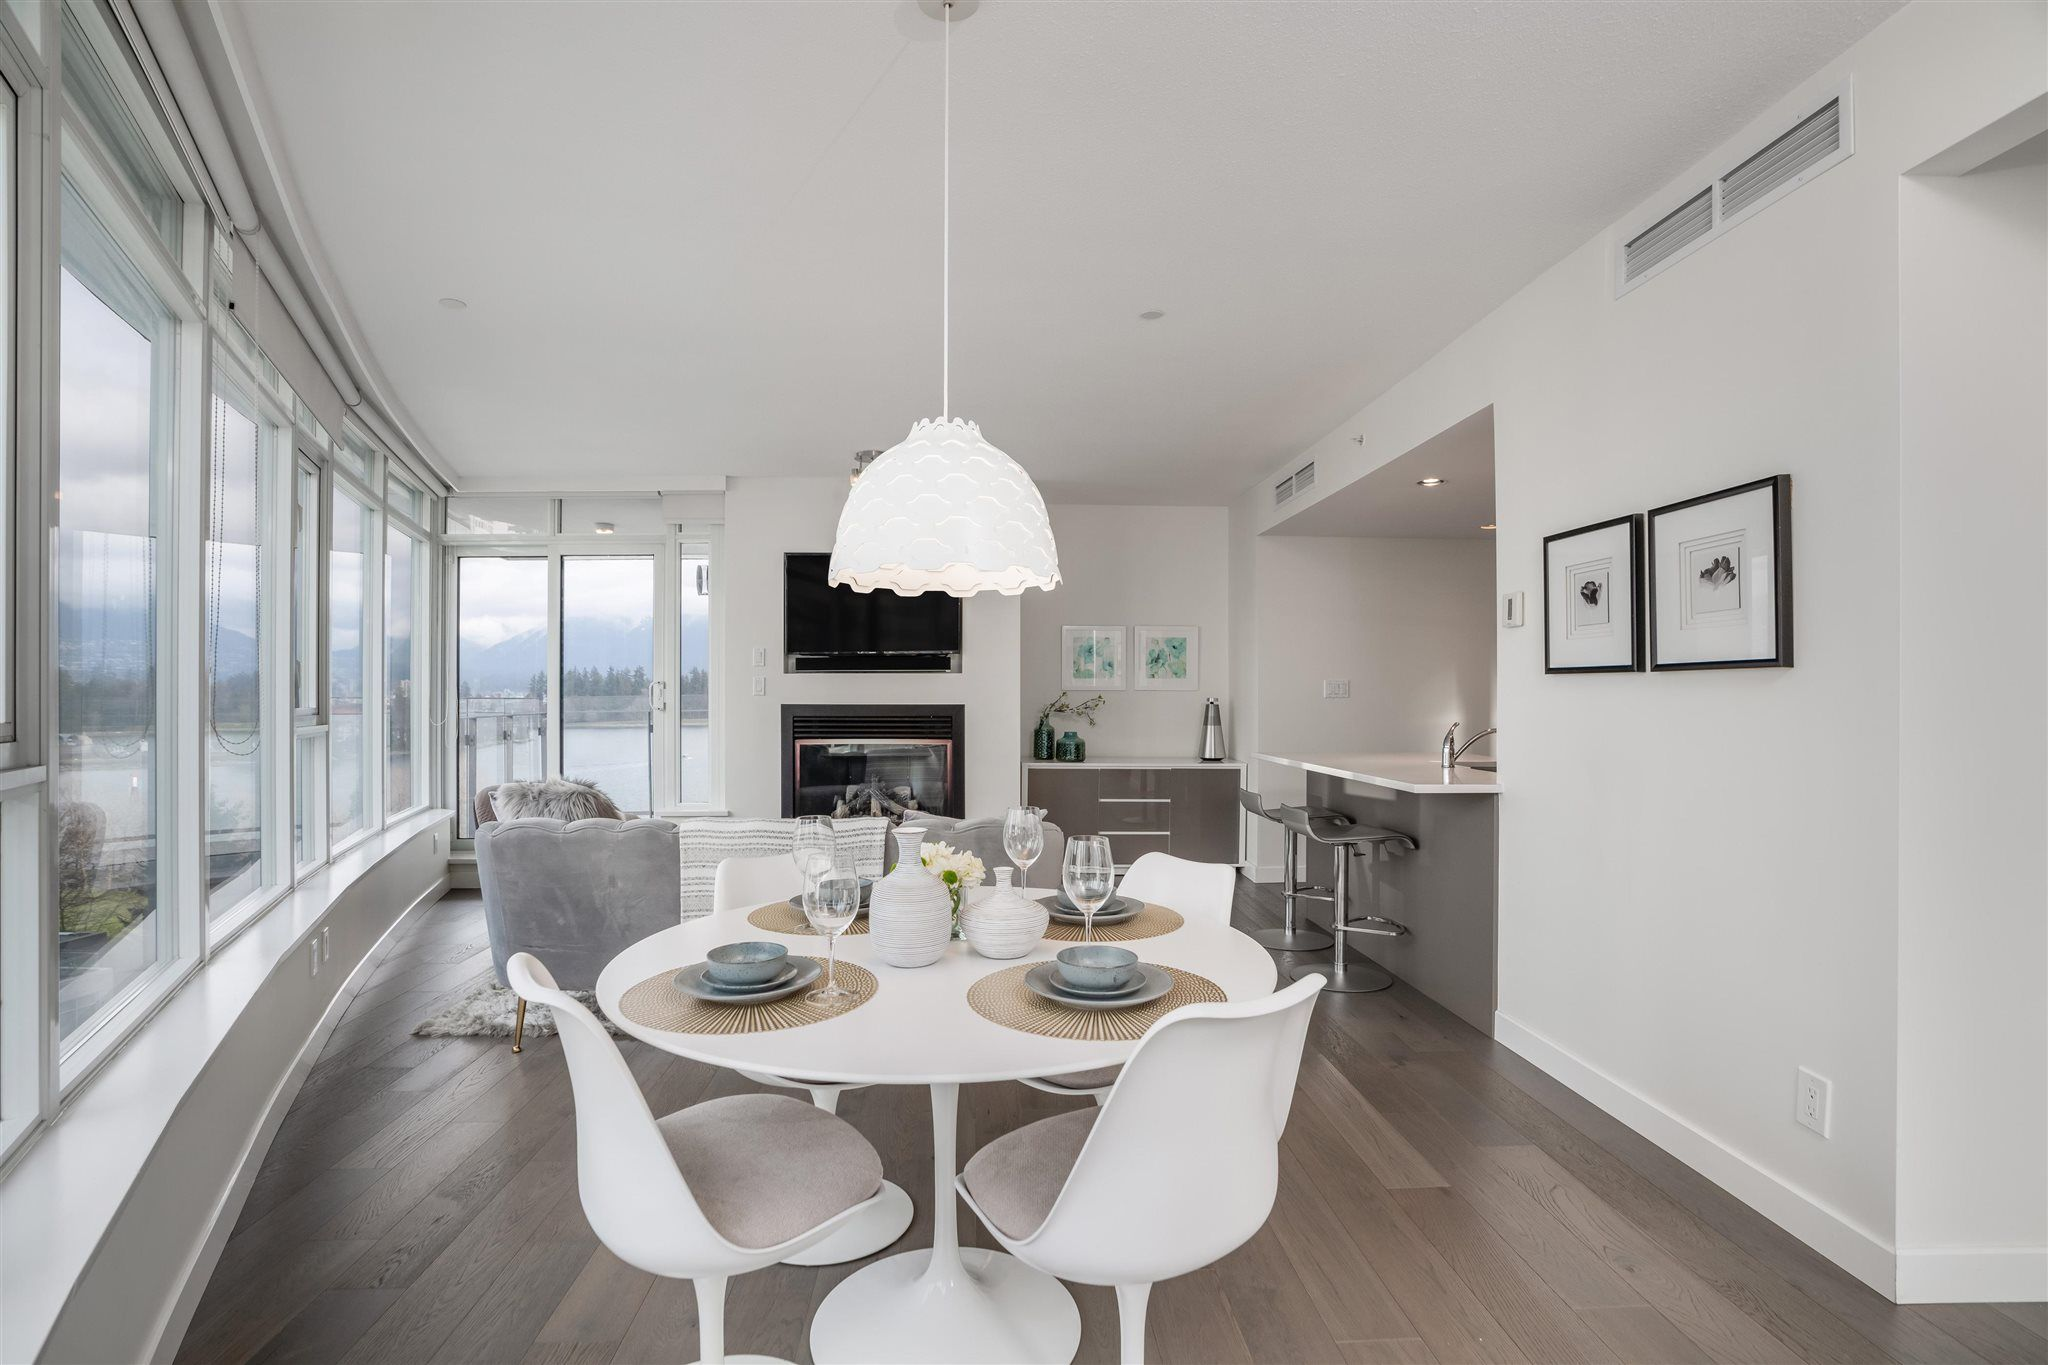 Main Photo: 604 1233 W CORDOVA Street in Vancouver: Coal Harbour Condo for sale (Vancouver West)  : MLS®# R2604078